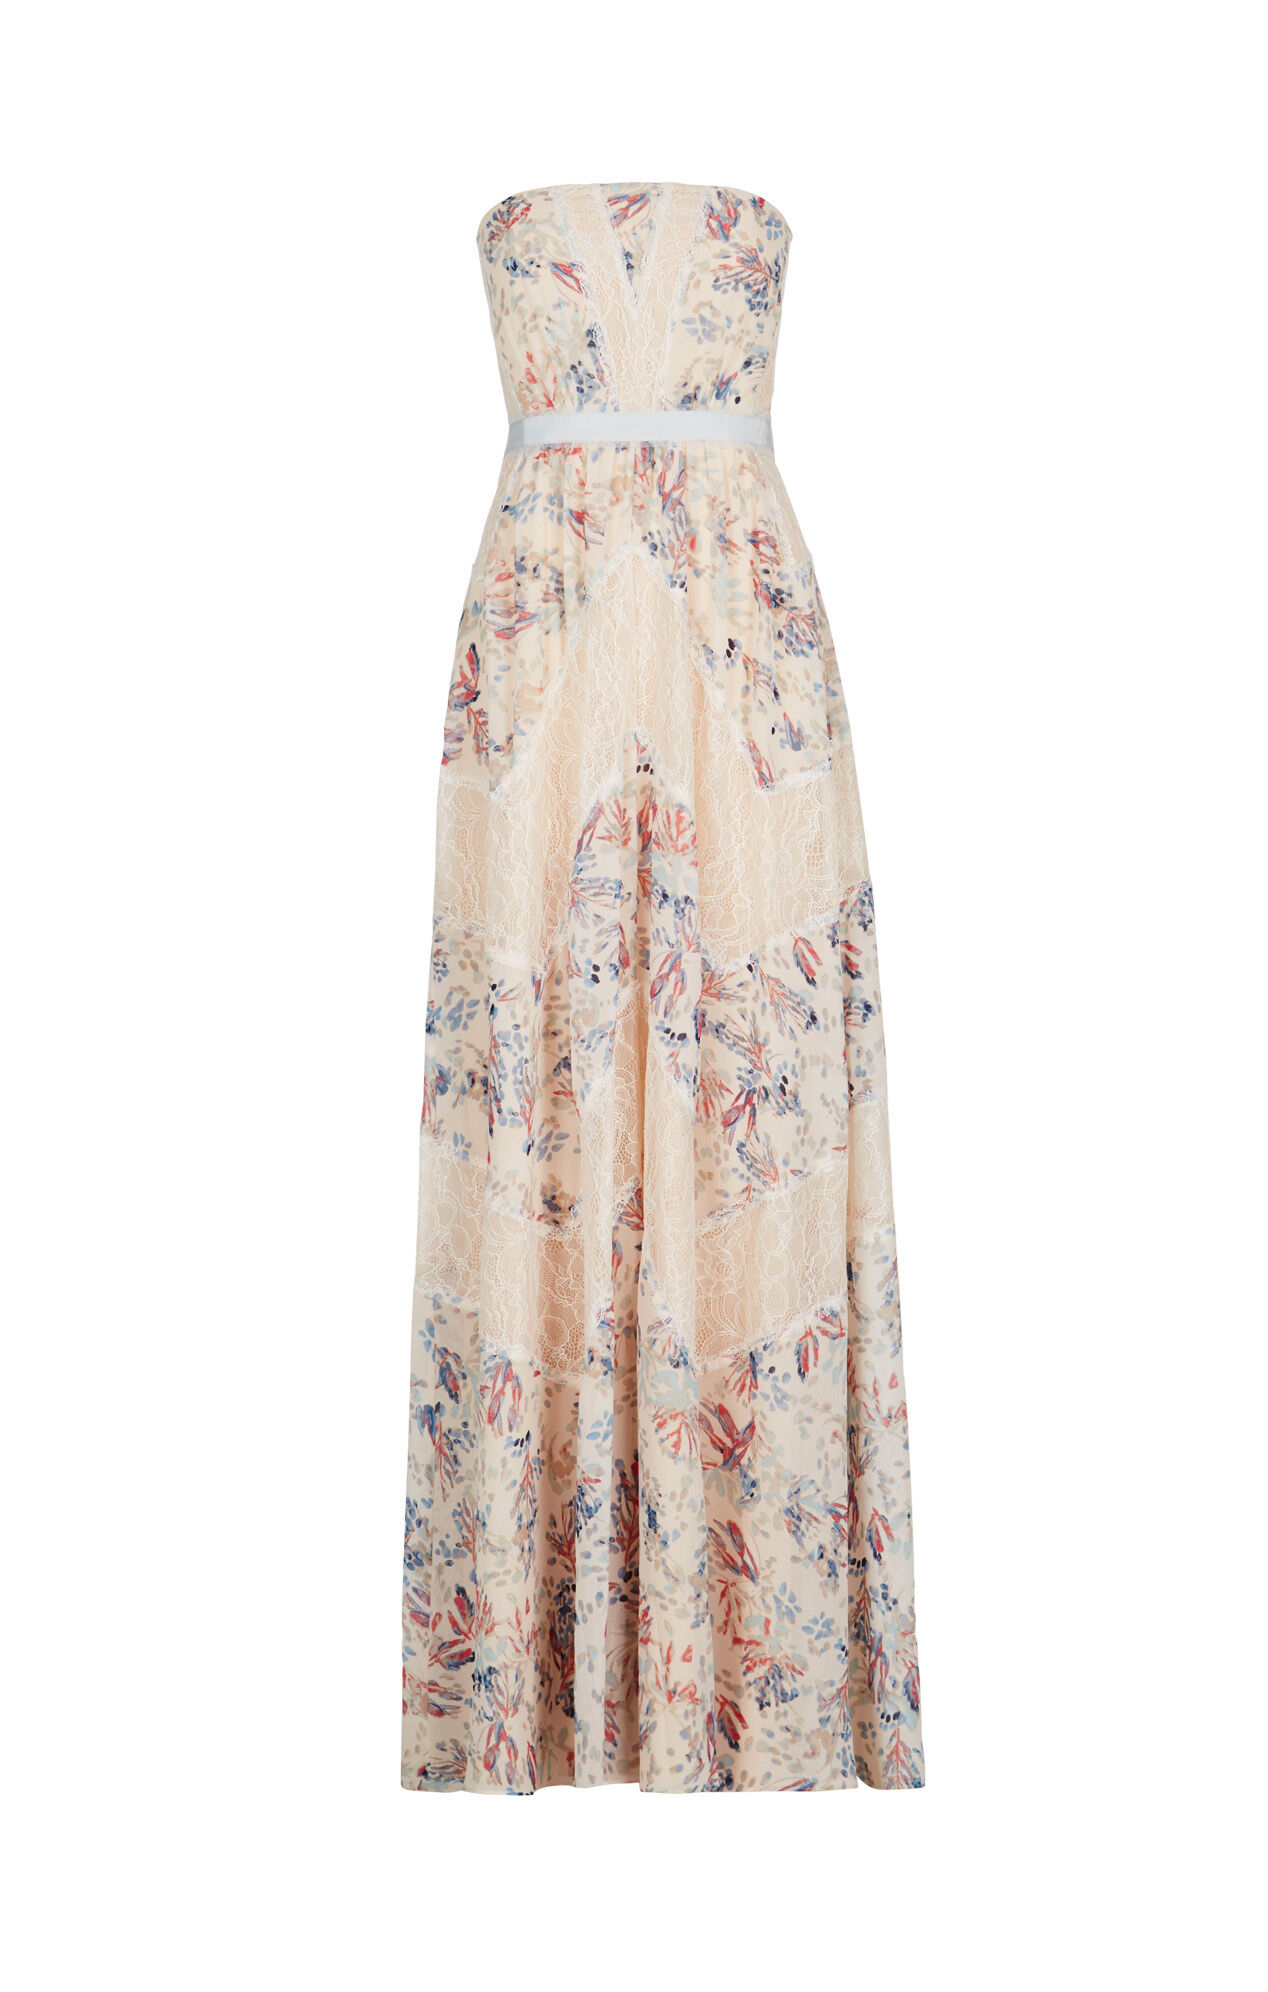 Elle Strapless Floral Print-Blocked Gown